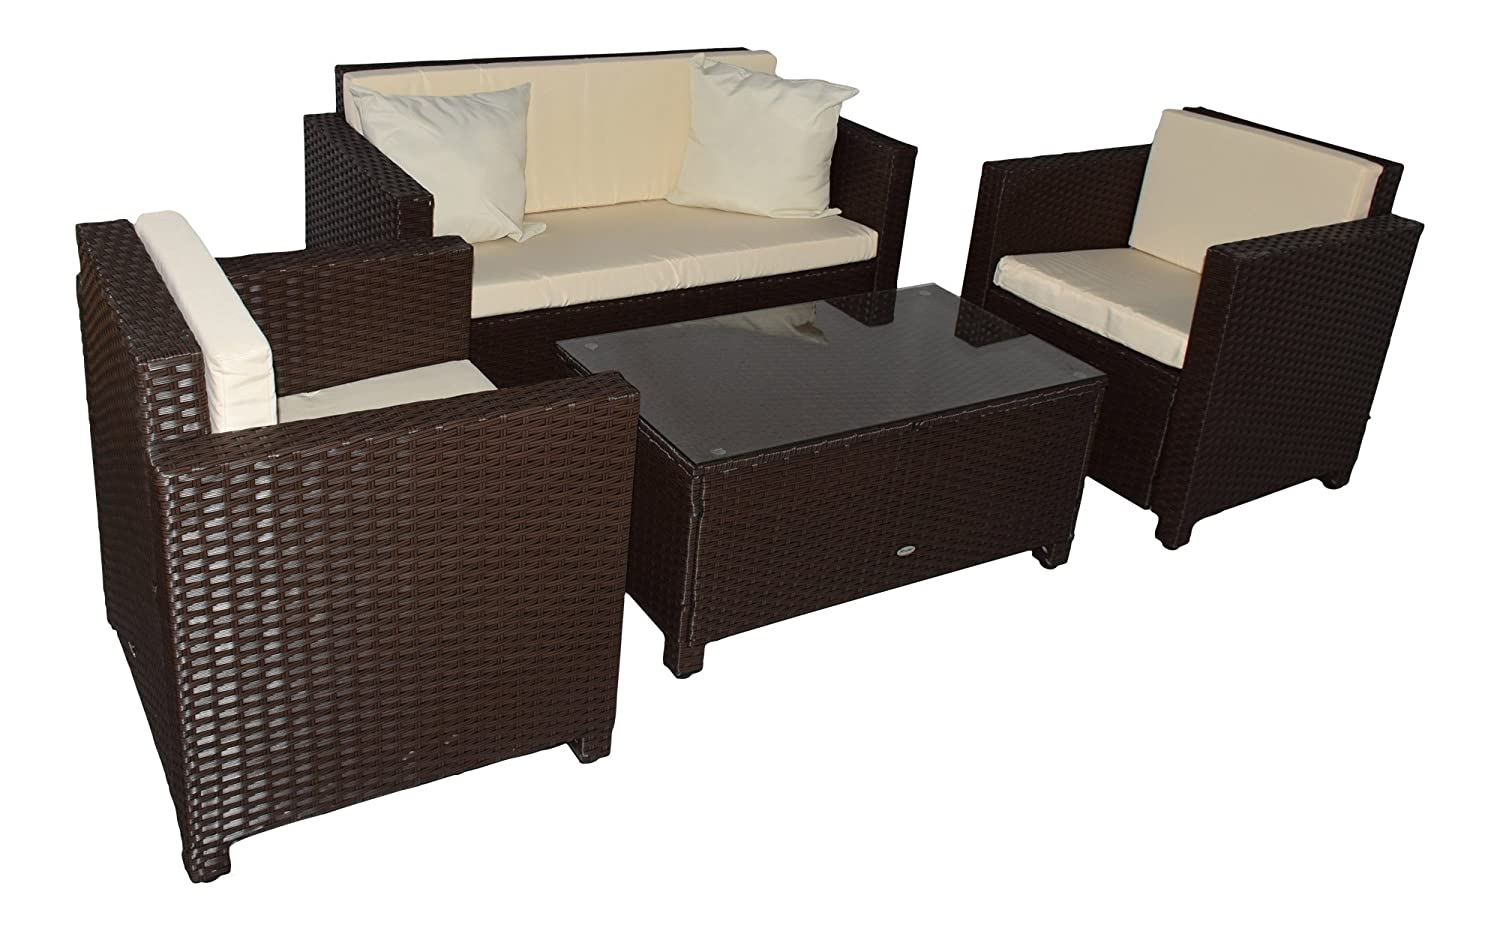 gartenm bel garten lounge sitzgruppe rattan cannes brown kaufen. Black Bedroom Furniture Sets. Home Design Ideas